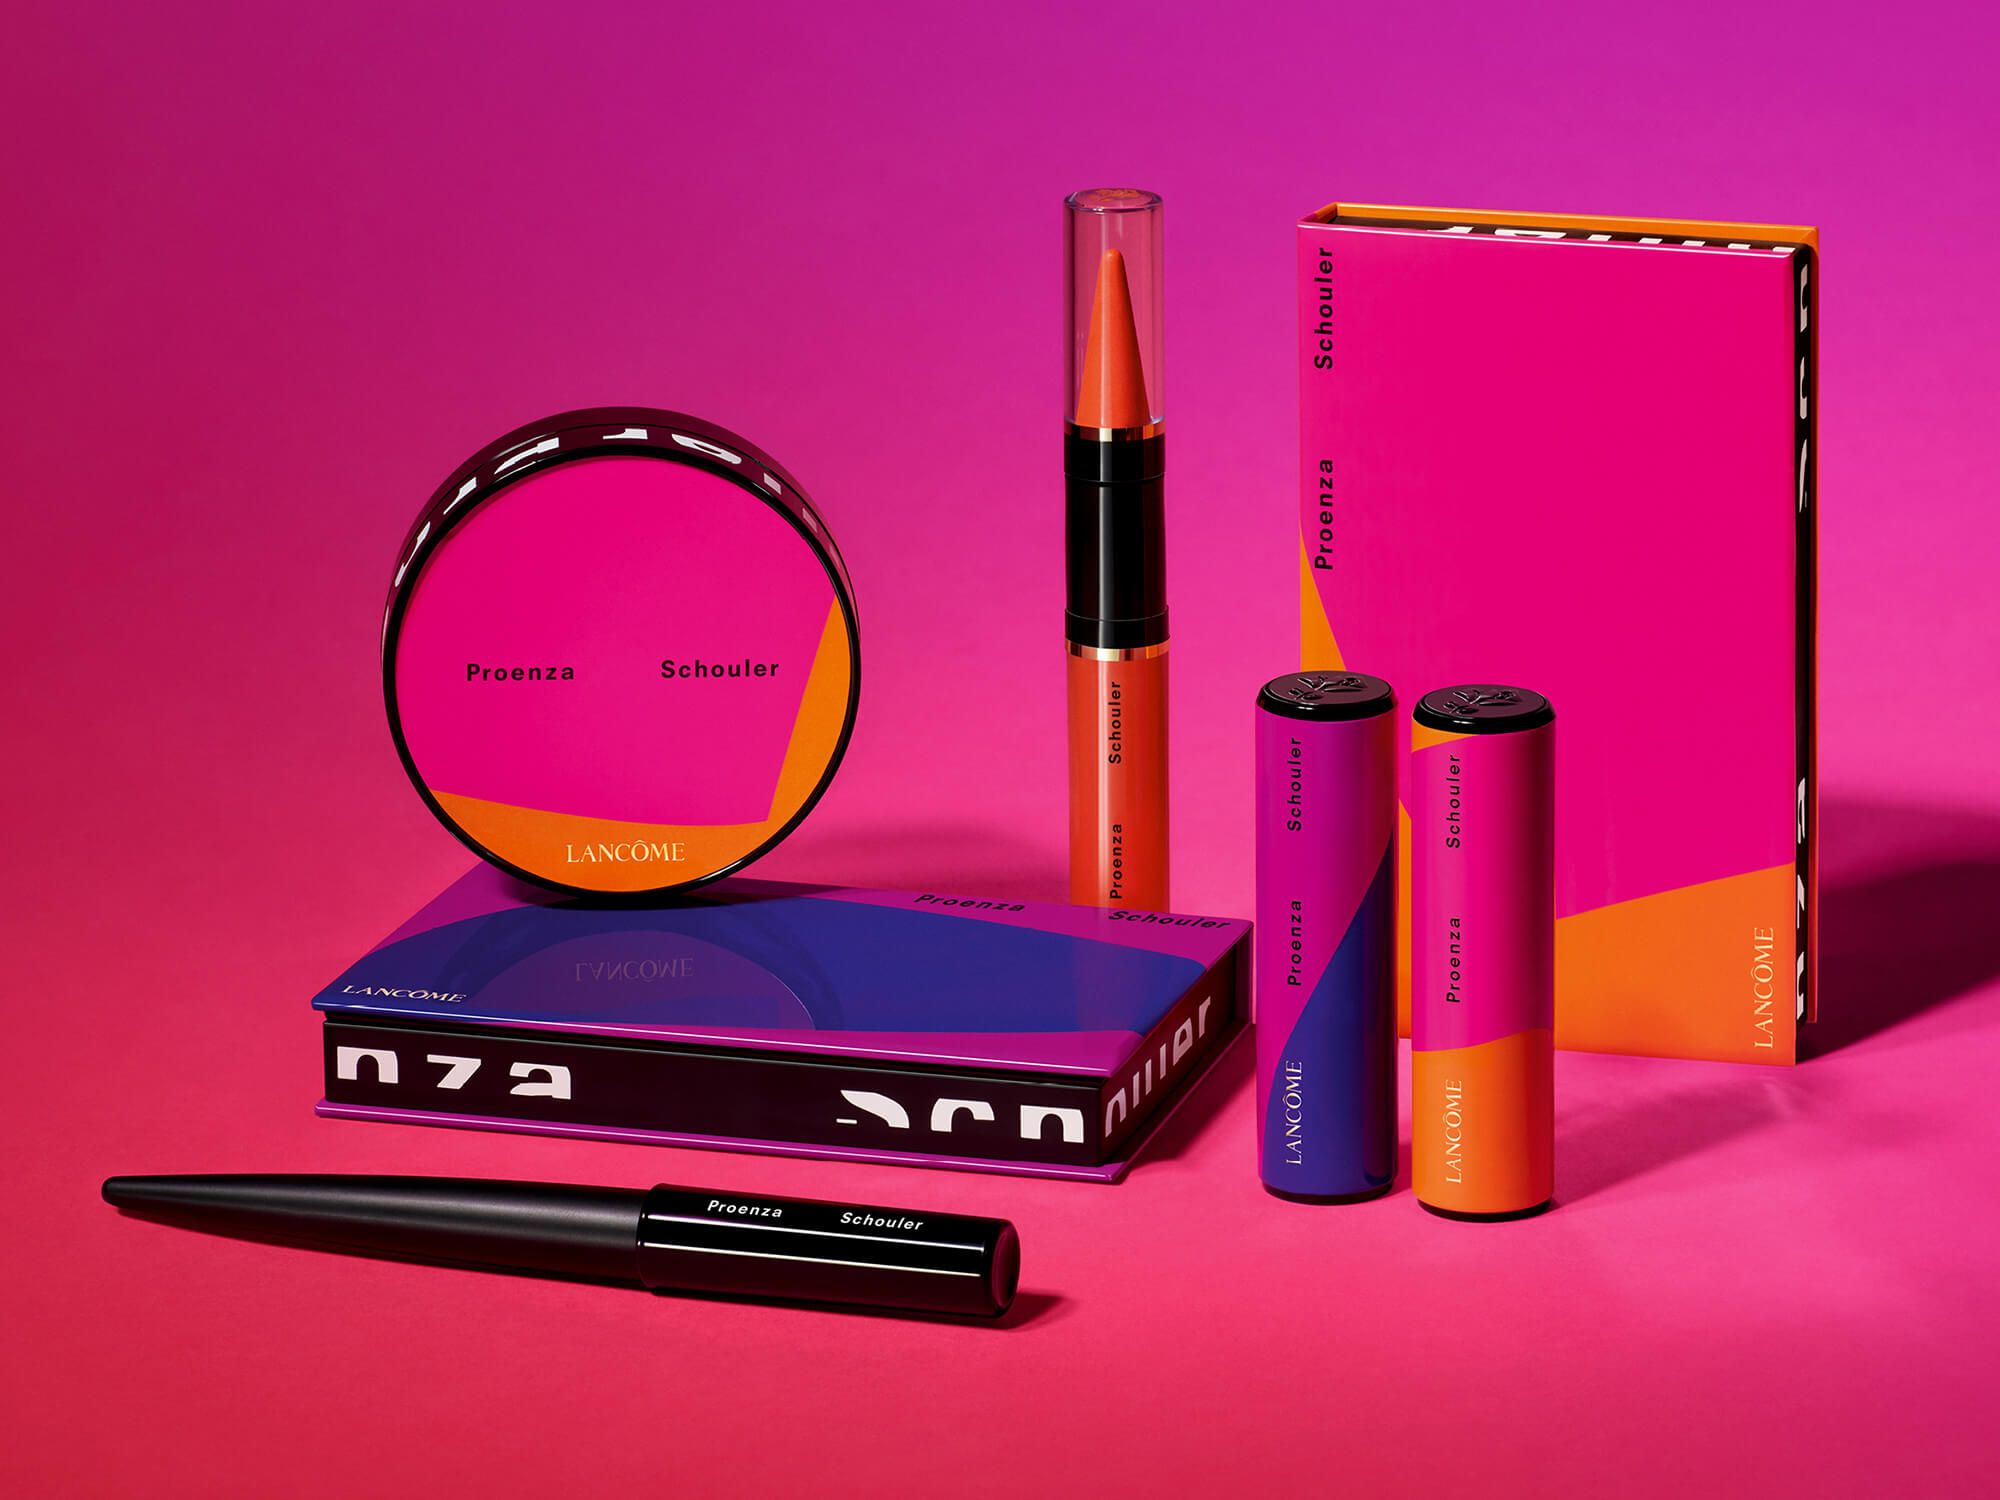 Proenza Schouler for Lancome makeup collection